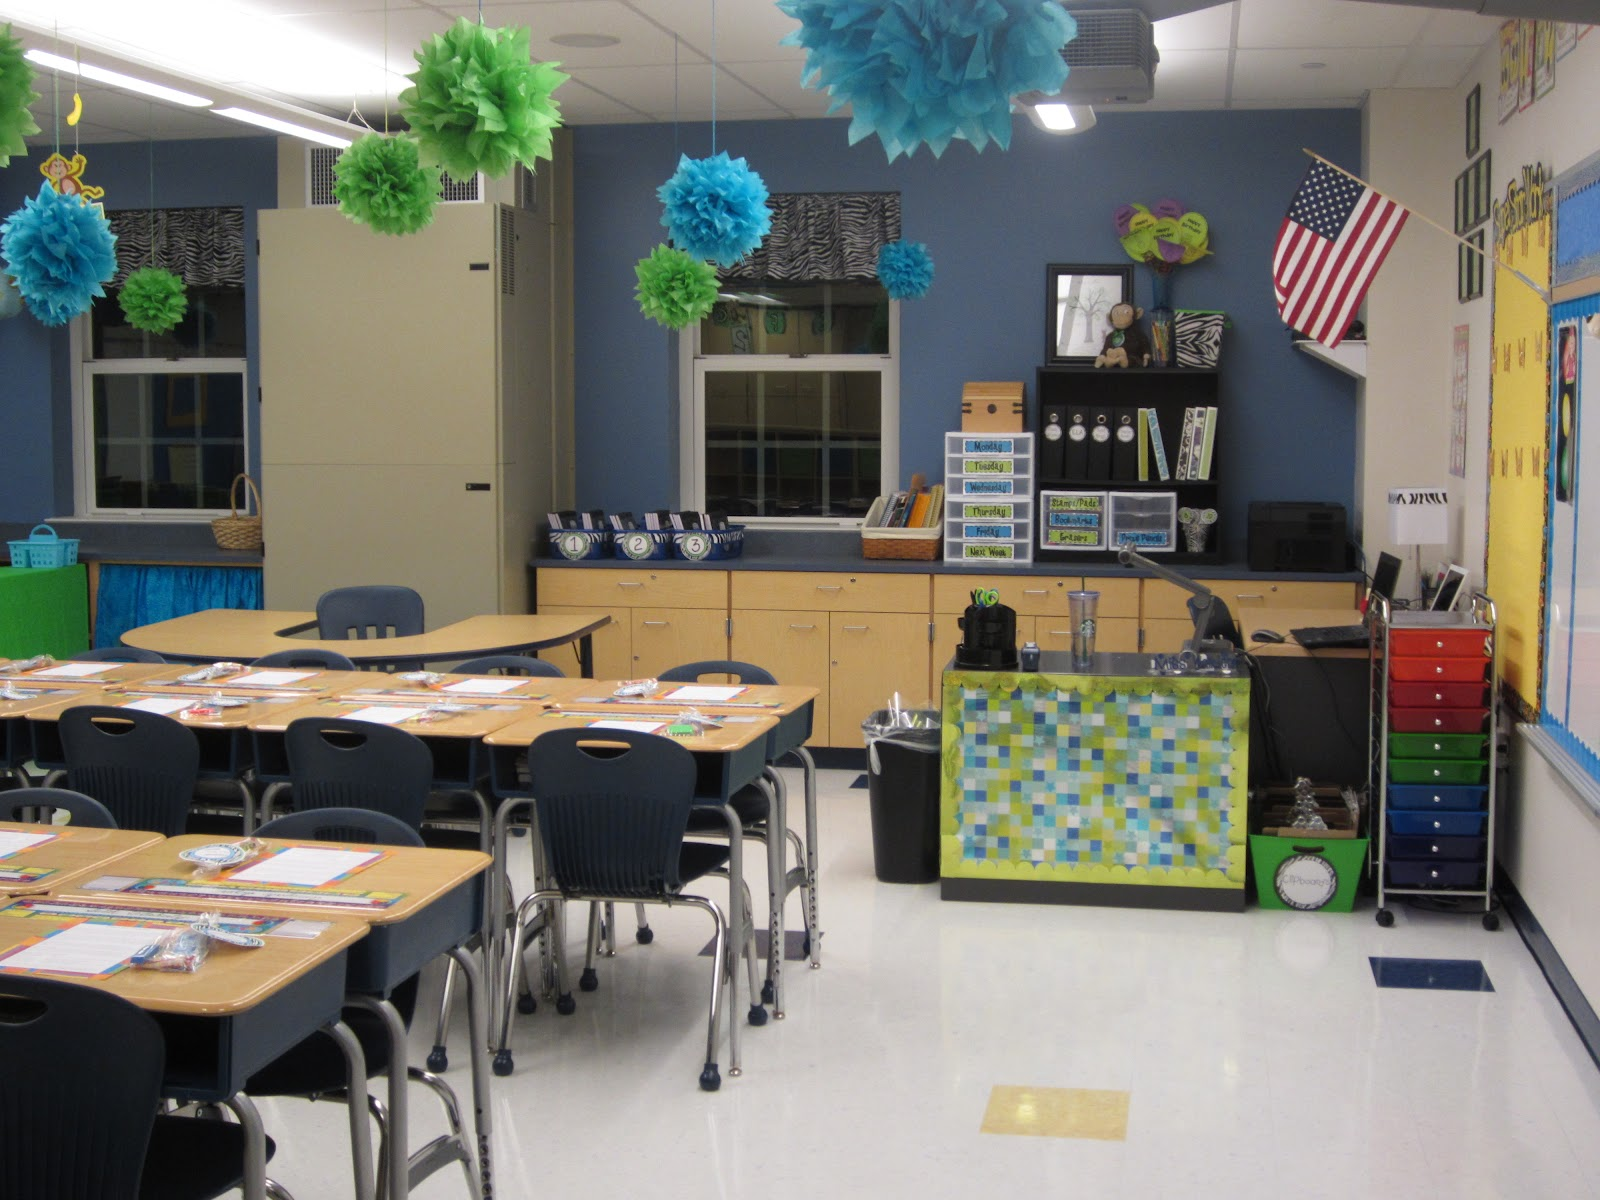 Creative Classroom Idea ~ The creative chalkboard classroom tour pictures galore